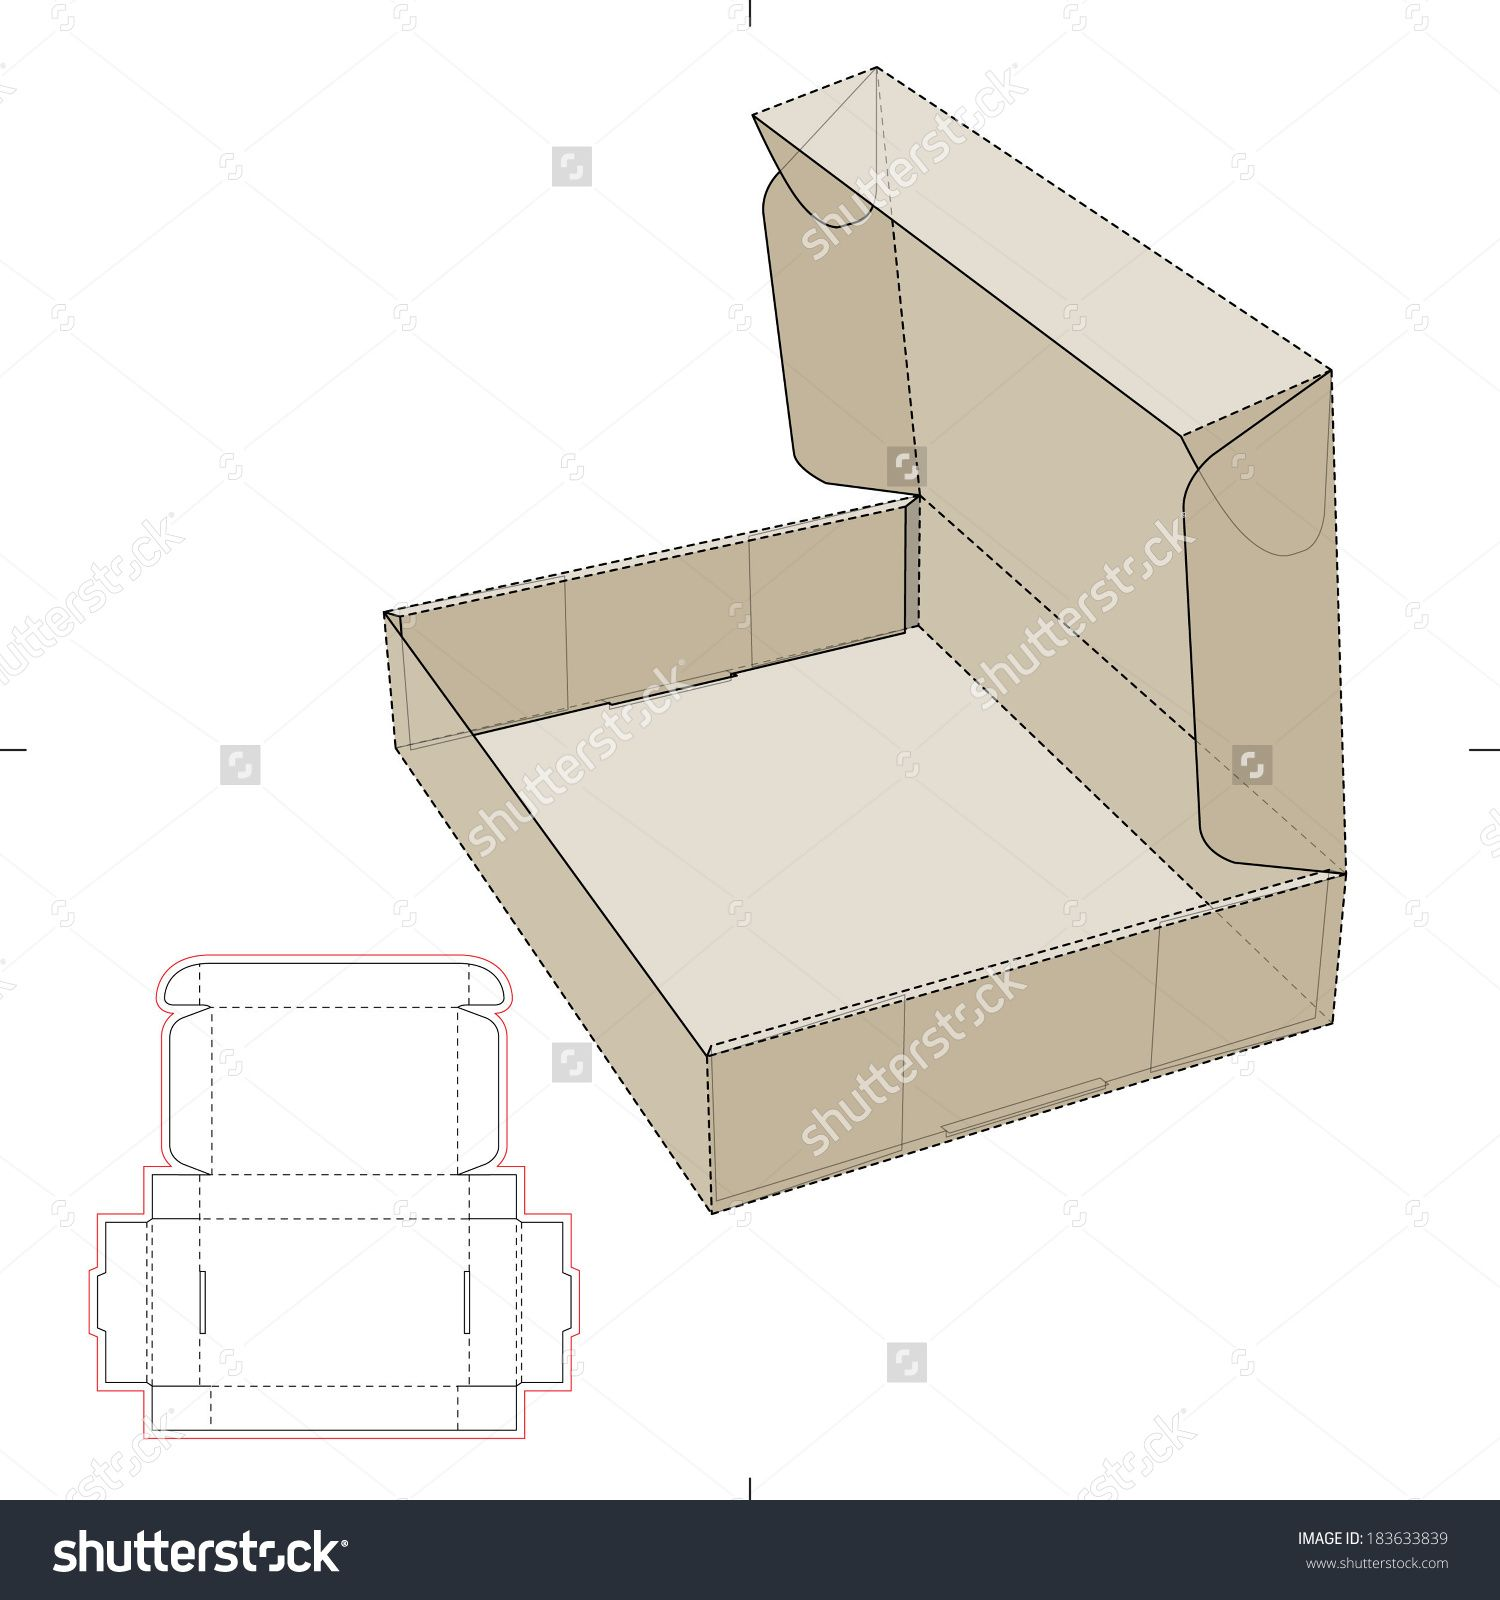 cardboard flat box with die cut pattern stock vector illustration 183633839 shutterstock. Black Bedroom Furniture Sets. Home Design Ideas